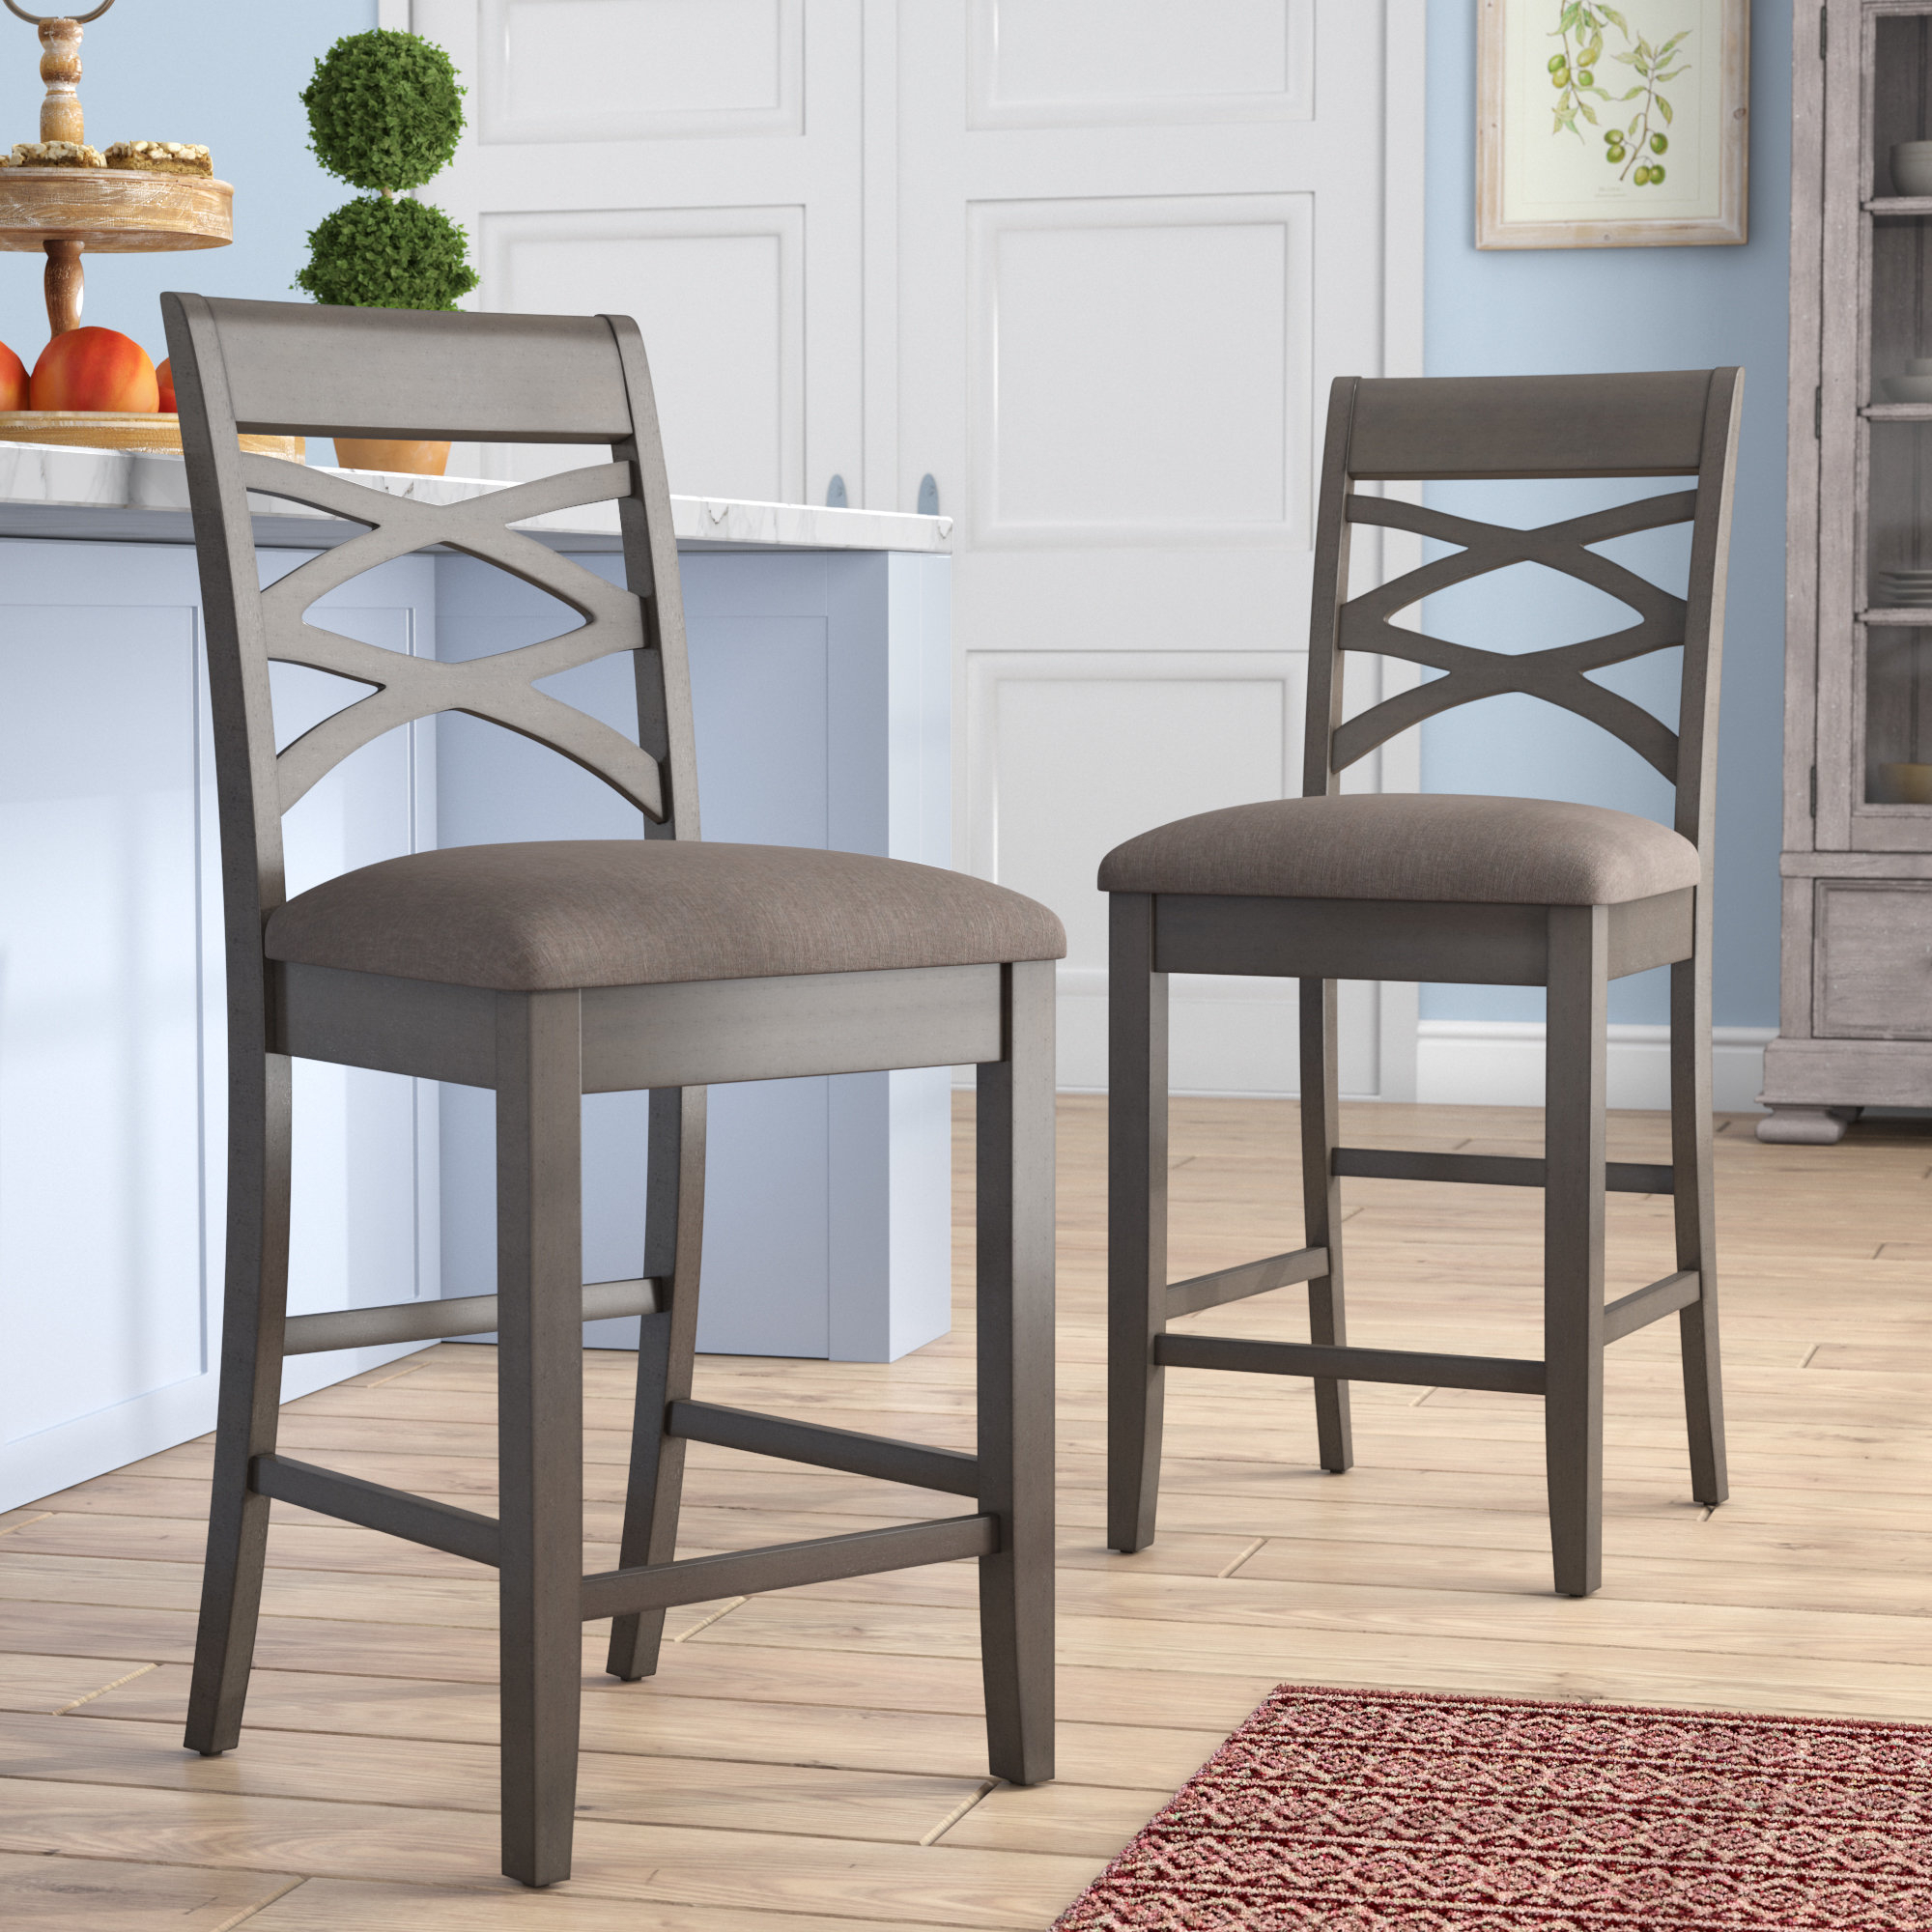 """Gracie Oaks Jeanine Wood Double Cross Back 24"""" Bar Stool & Reviews Within Bailey Angled Track Arm Swivel Gliders (Image 12 of 25)"""